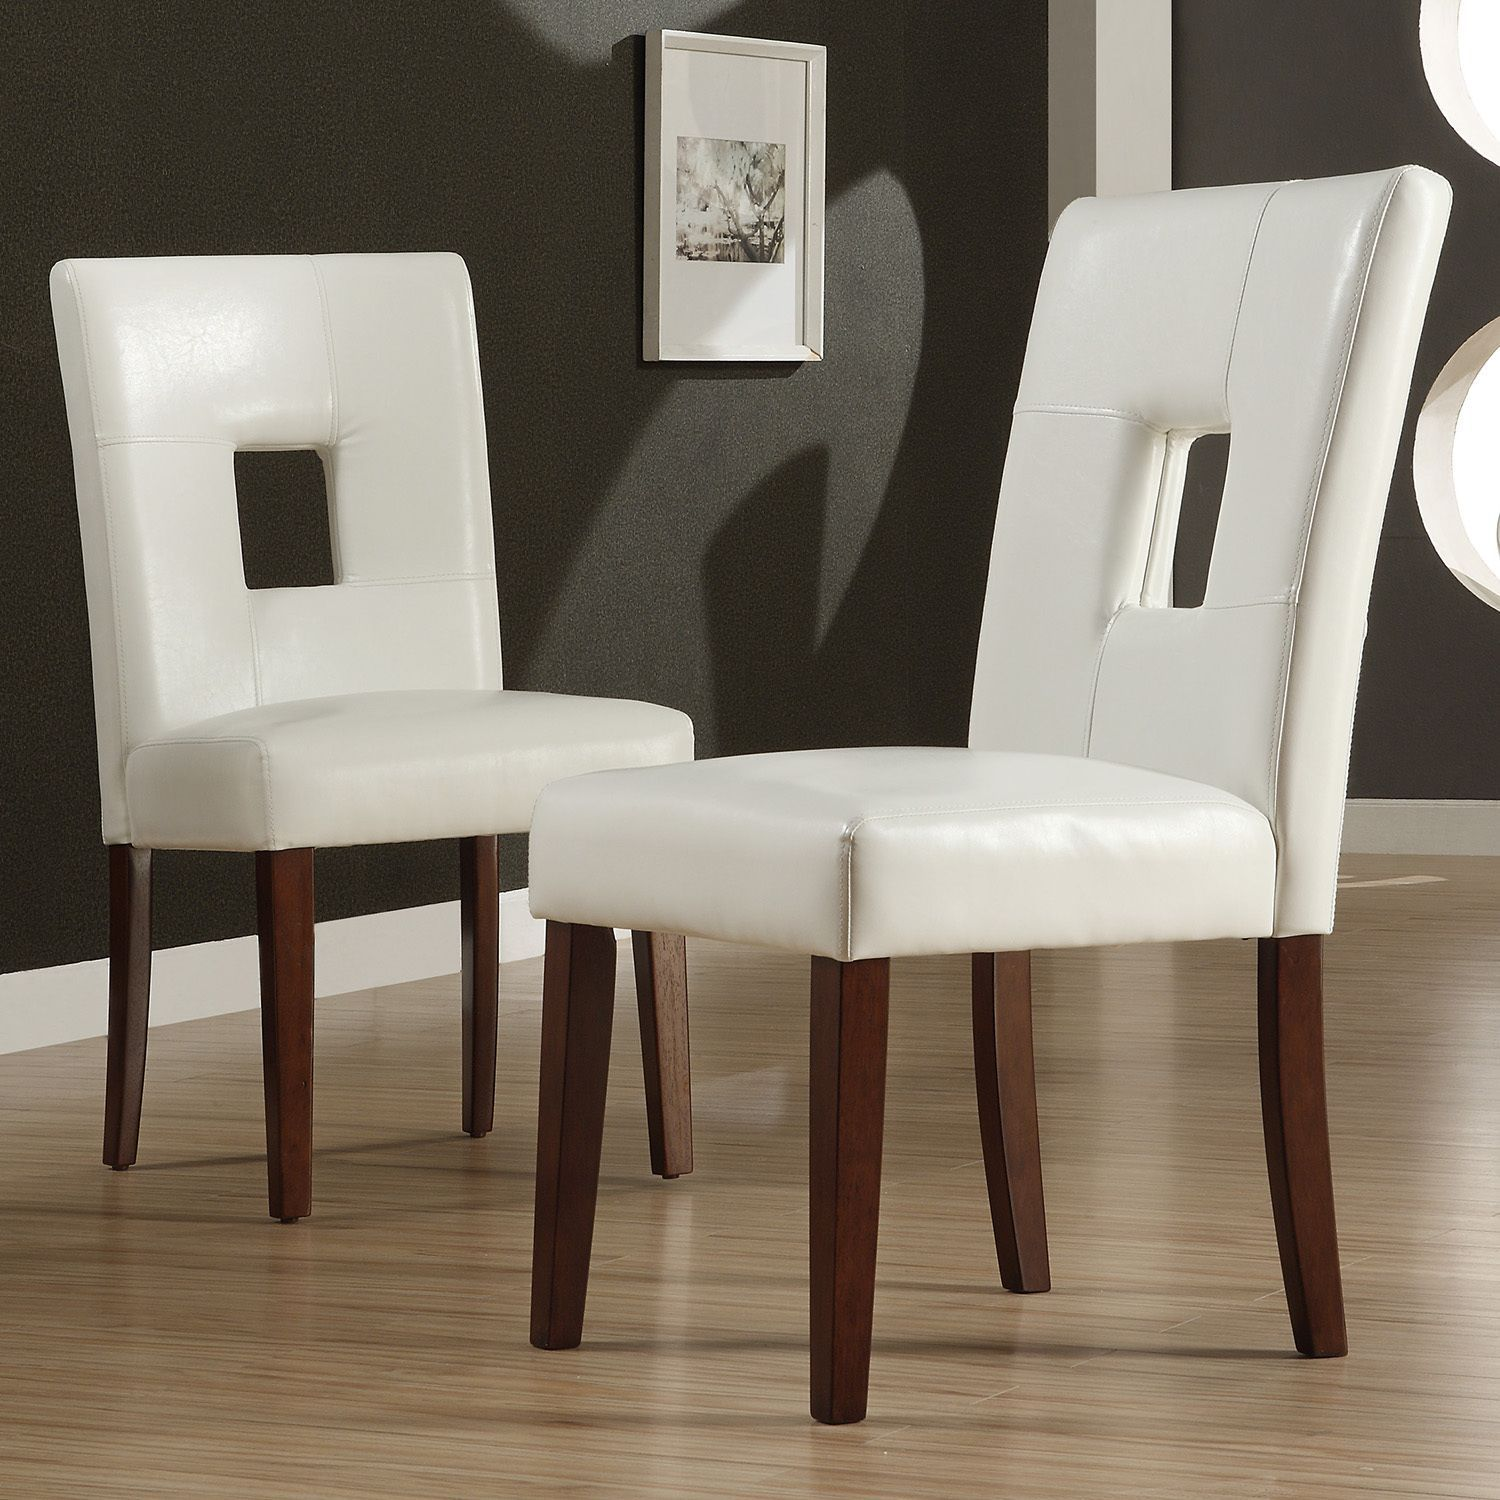 Alsace White Faux Leather Dining Chairs (Set Of 2) By